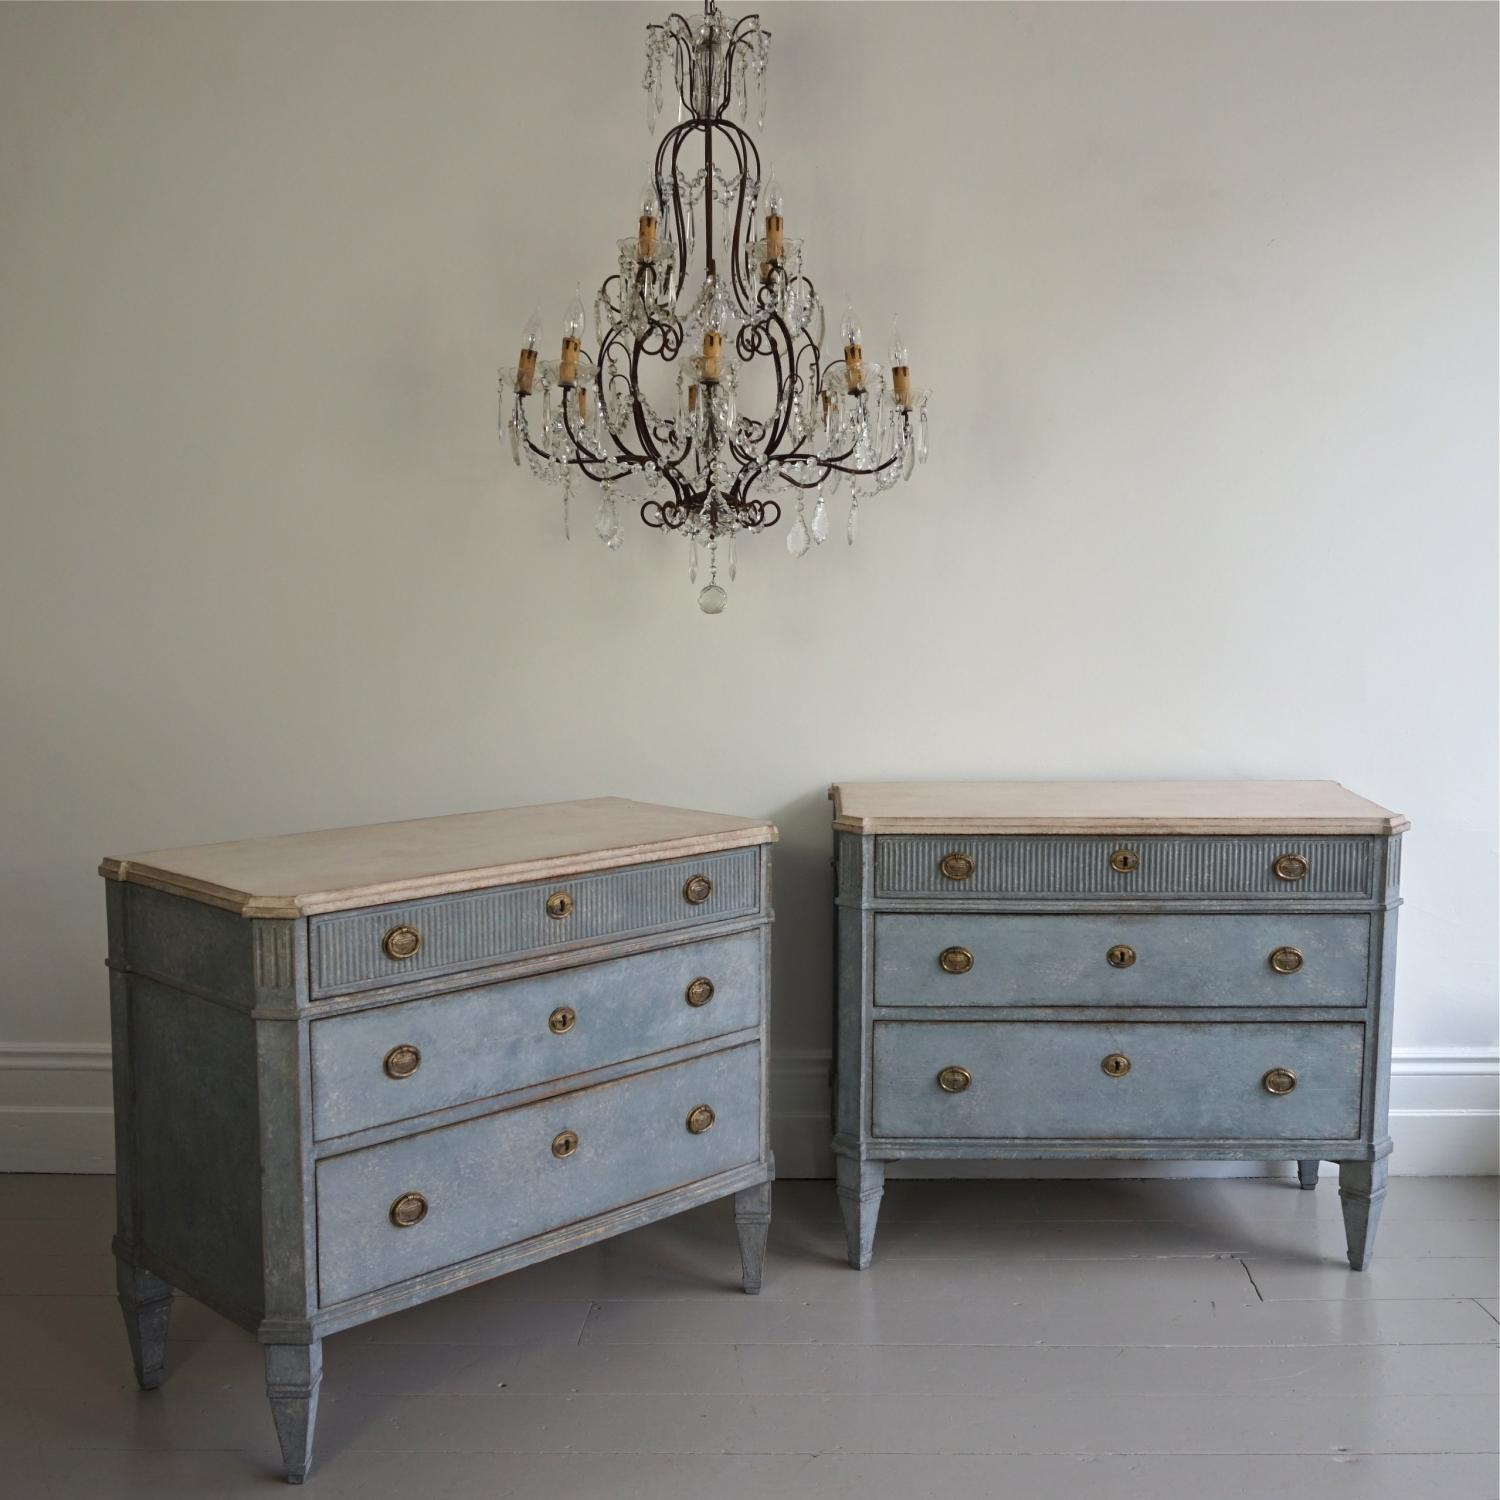 OUSTANDING PAIR OF GUSTAVIAN STYLE CHESTS